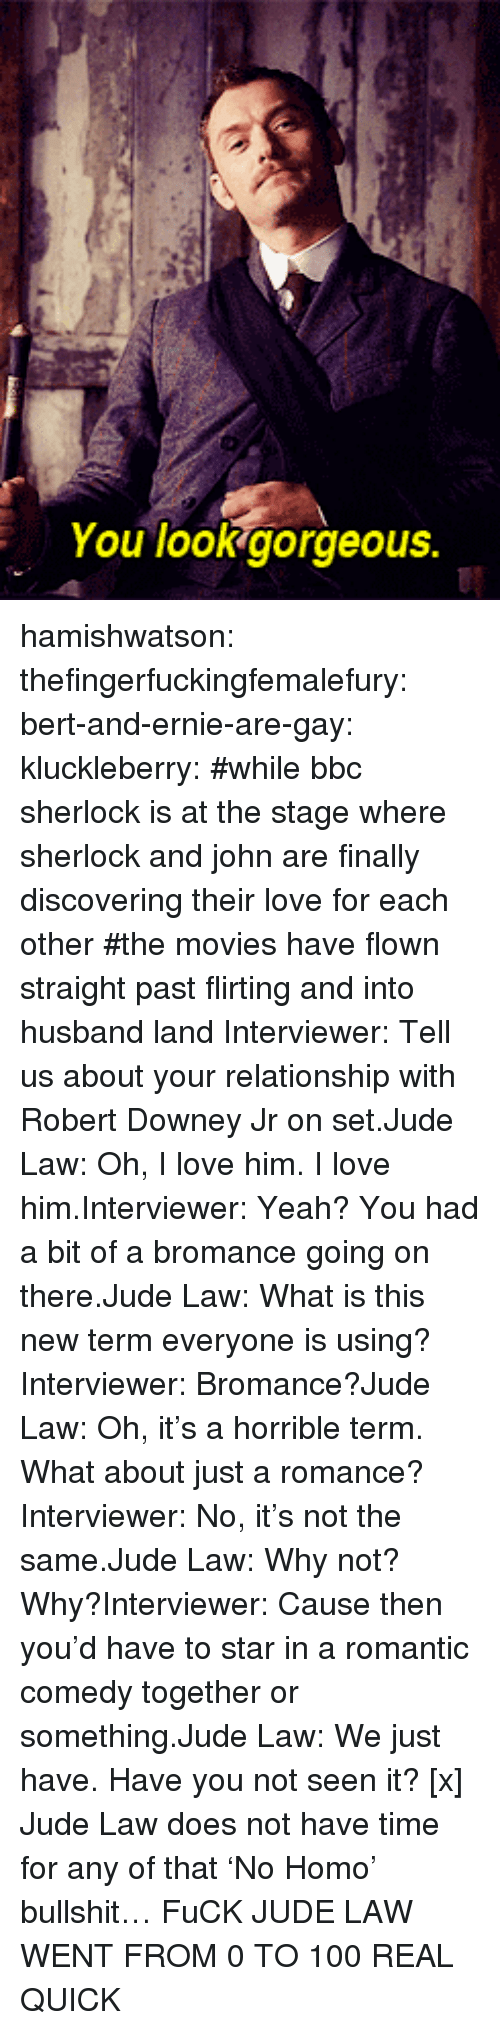 0 to 100: You lookgorgeous. hamishwatson: thefingerfuckingfemalefury:  bert-and-ernie-are-gay:  kluckleberry: #while bbc sherlock is at the stage where sherlock and john are finally discovering their love for each other#the movies have flown straight past flirting and into husband land Interviewer: Tell us about your relationship with Robert Downey Jr on set.Jude Law: Oh, I love him. I love him.Interviewer: Yeah? You had a bit of a bromance going on there.Jude Law: What is this new term everyone is using?Interviewer: Bromance?Jude Law: Oh, it's a horrible term. What about just a romance?Interviewer: No, it's not the same.Jude Law: Why not? Why?Interviewer: Cause then you'd have to star in a romantic comedy together or something.Jude Law: We just have. Have you not seen it? [x]  Jude Law does not have time for any of that 'No Homo' bullshit…  FuCK JUDE LAW WENT FROM 0 TO 100 REAL QUICK